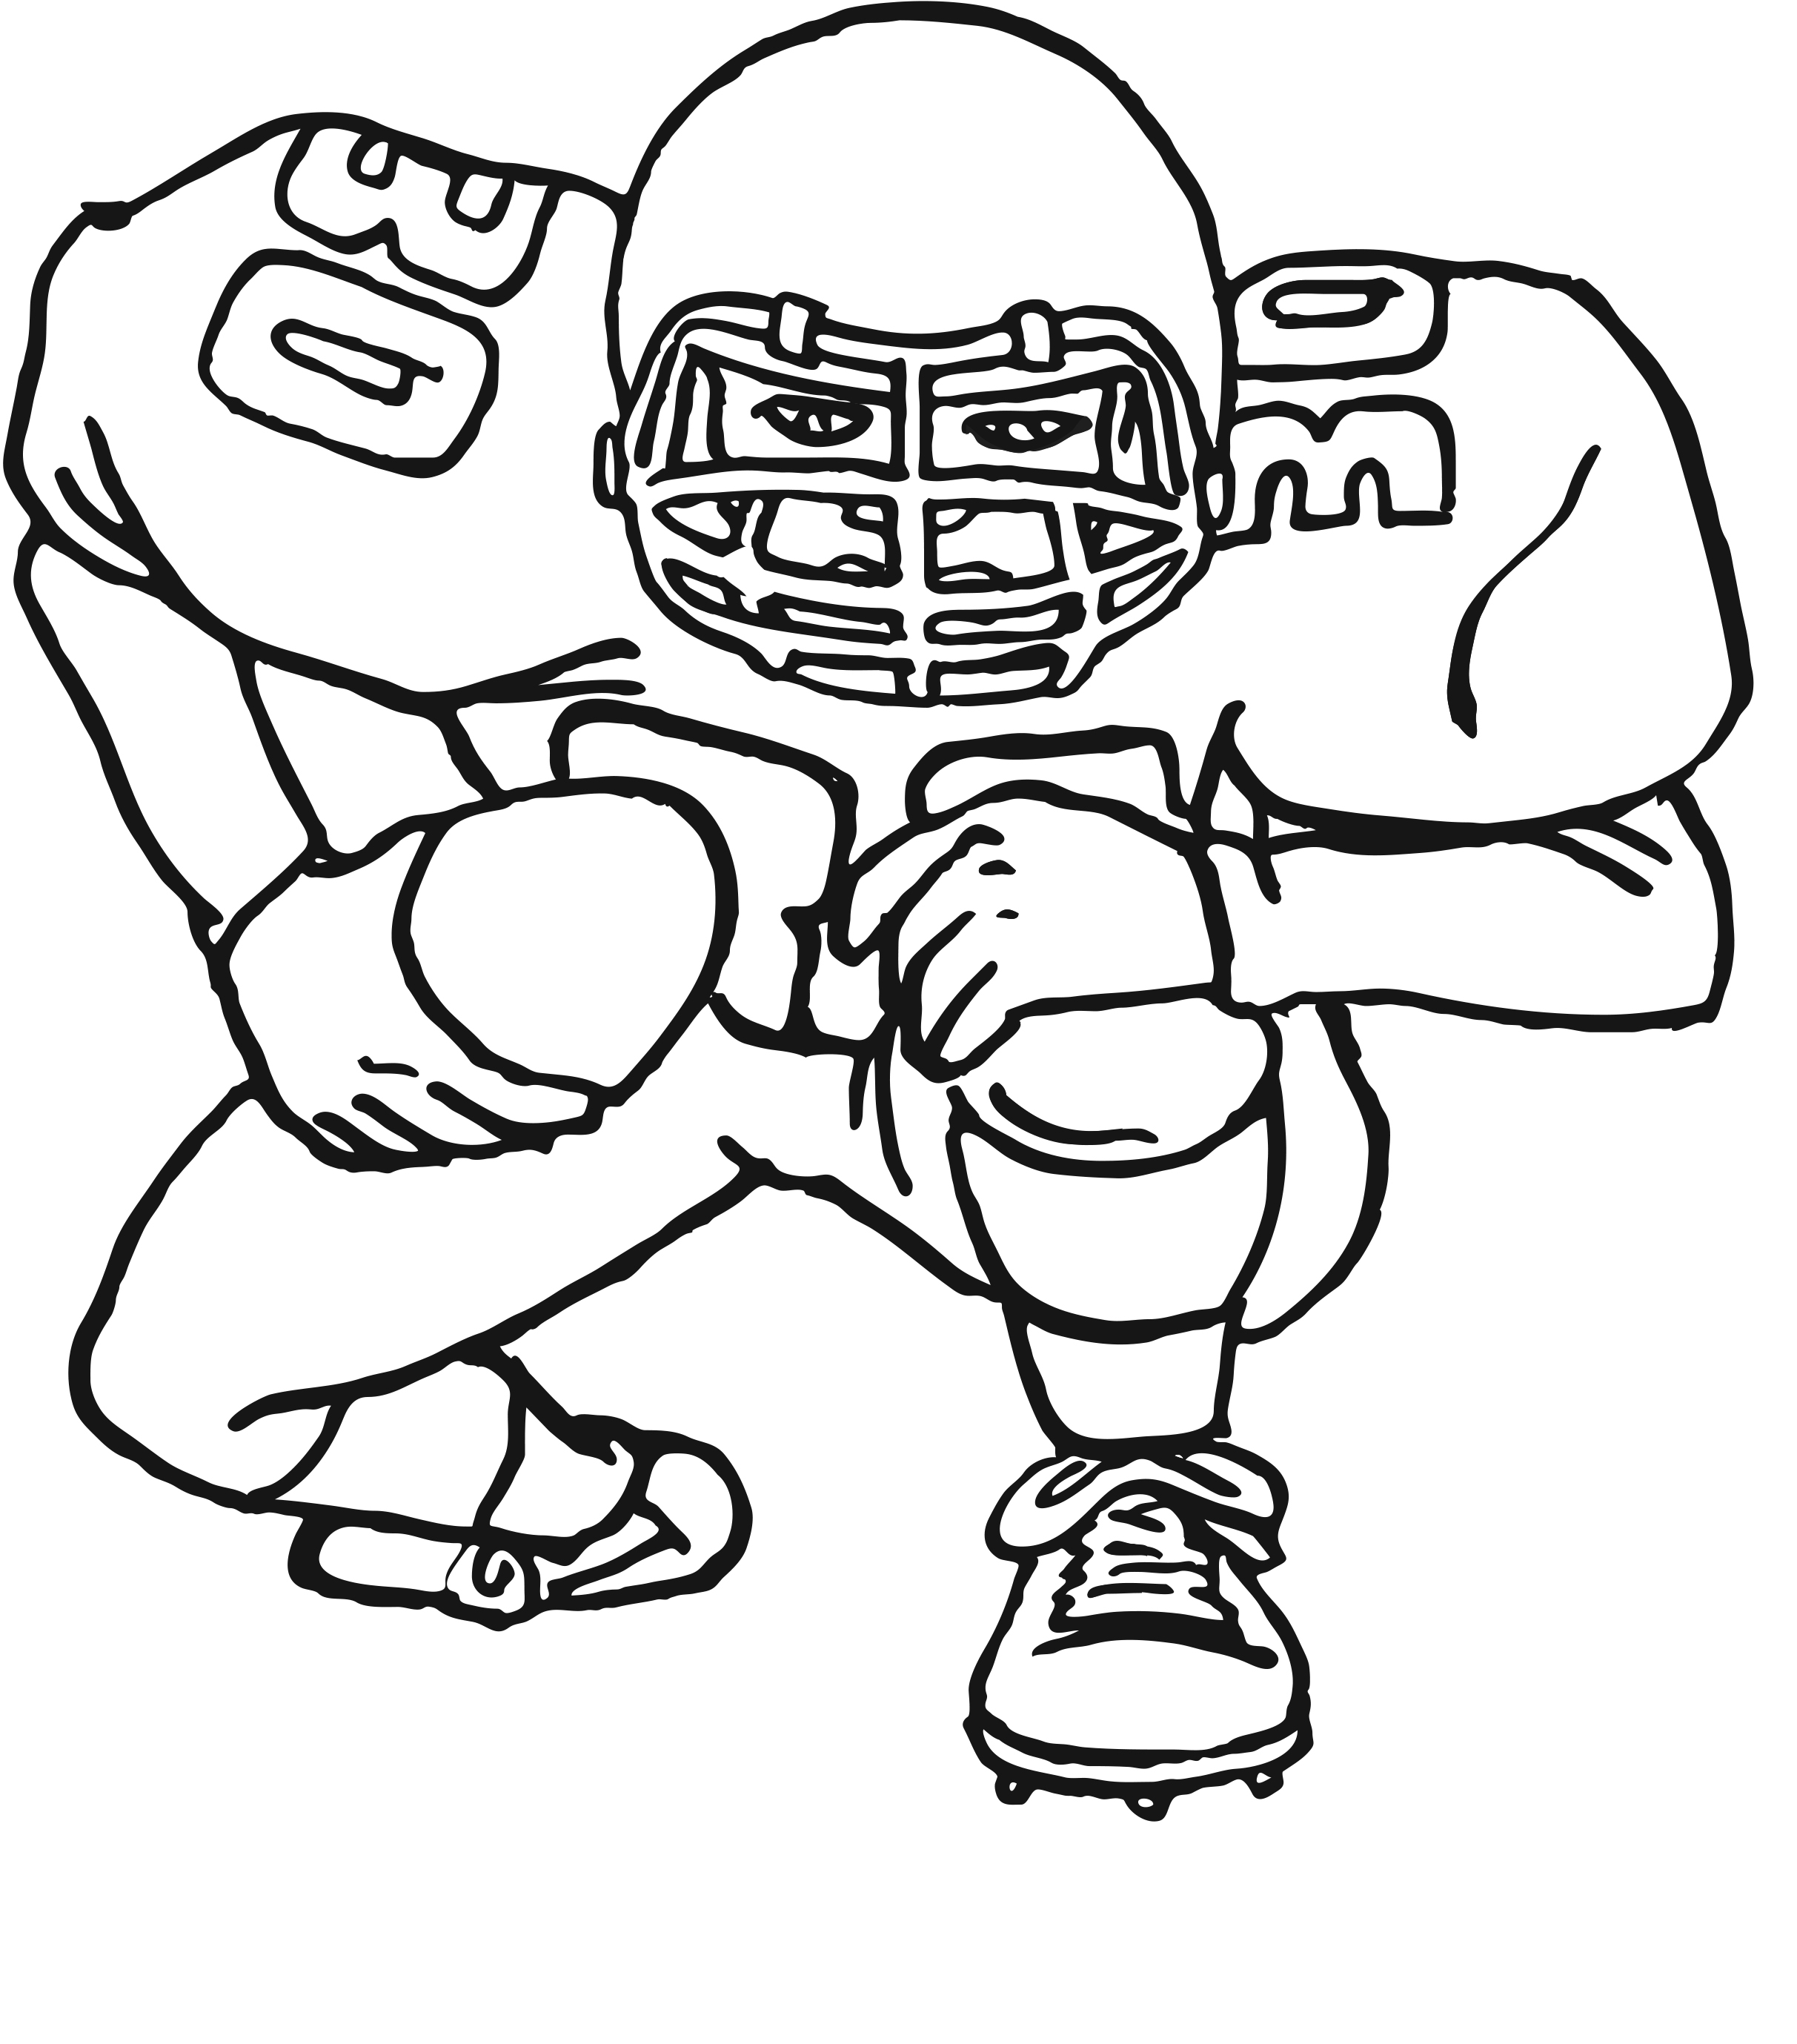 football coloring pages to print 35 free printable football or soccer coloring pages pages coloring football print to